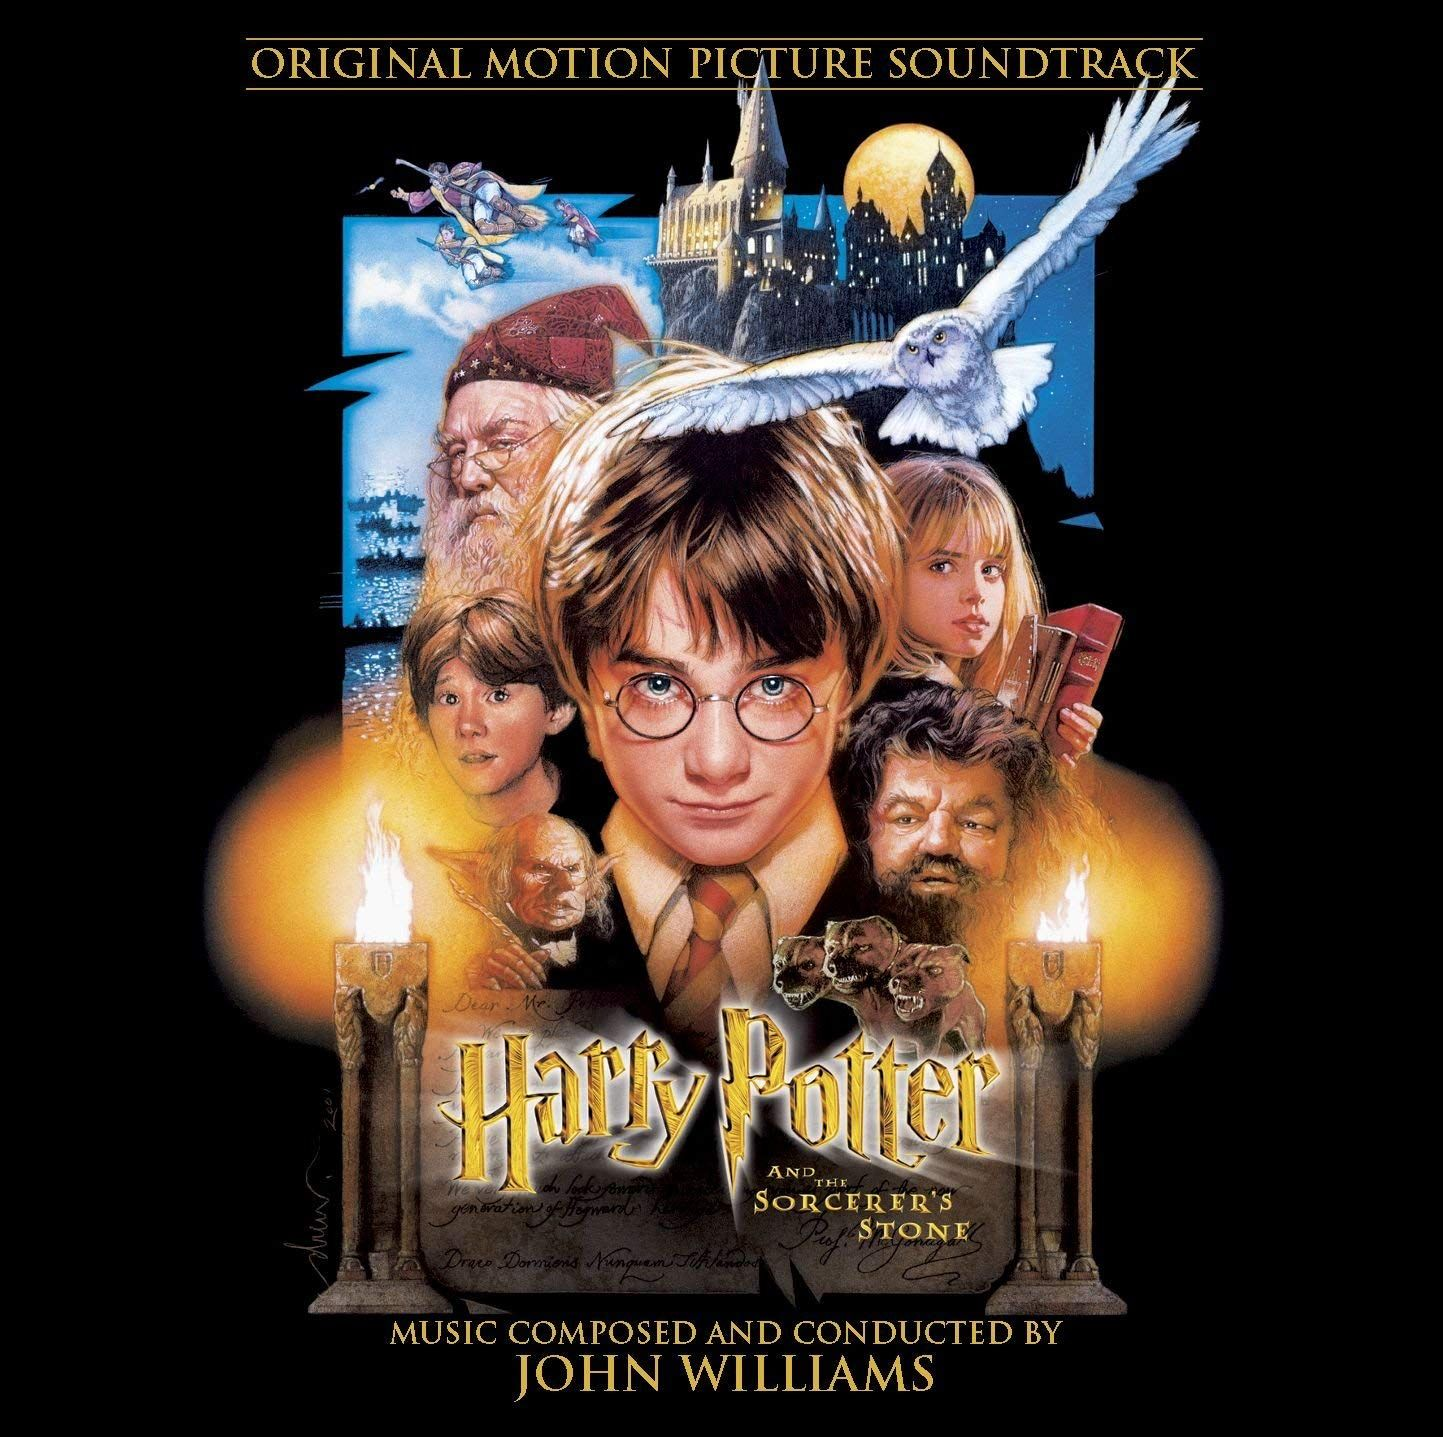 Harry Potter And The Sorcerer S Stone Movie Soundtrack 2001 John Williams Score For This Movie And The Next Two Movies Helped Propel The Harry Potter Film